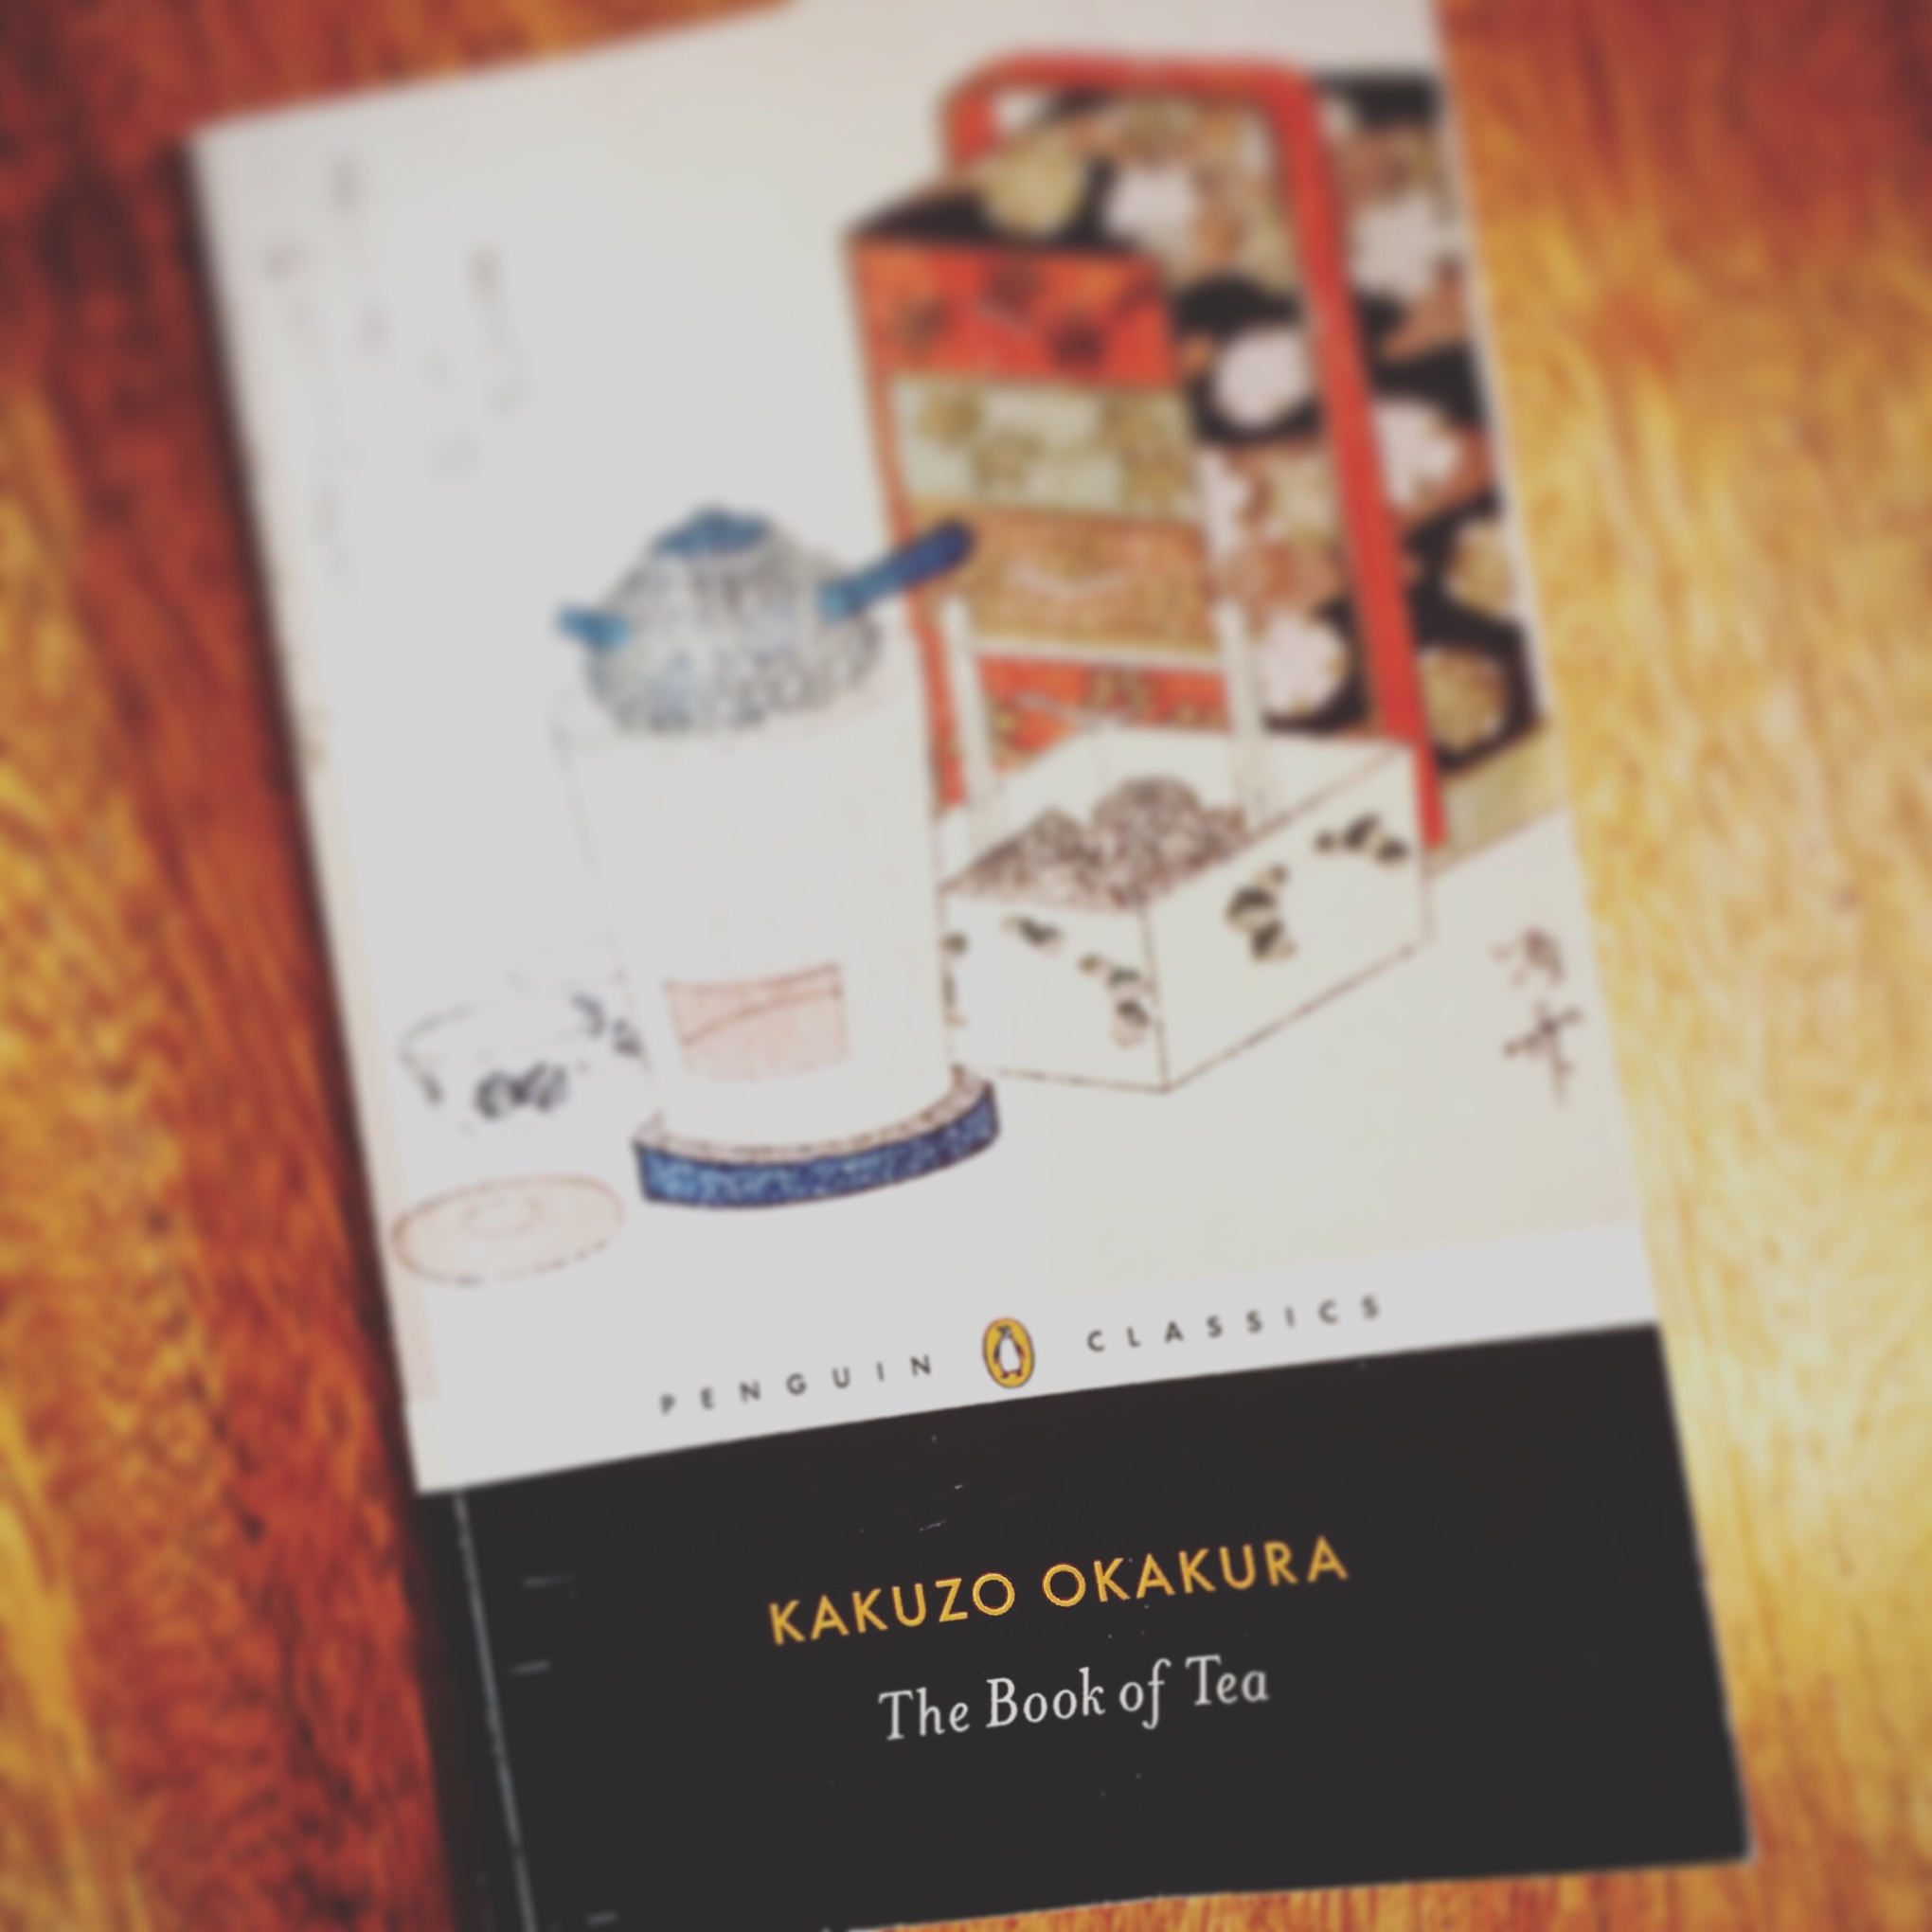 The Book of Tea by Kakuzo Okakura